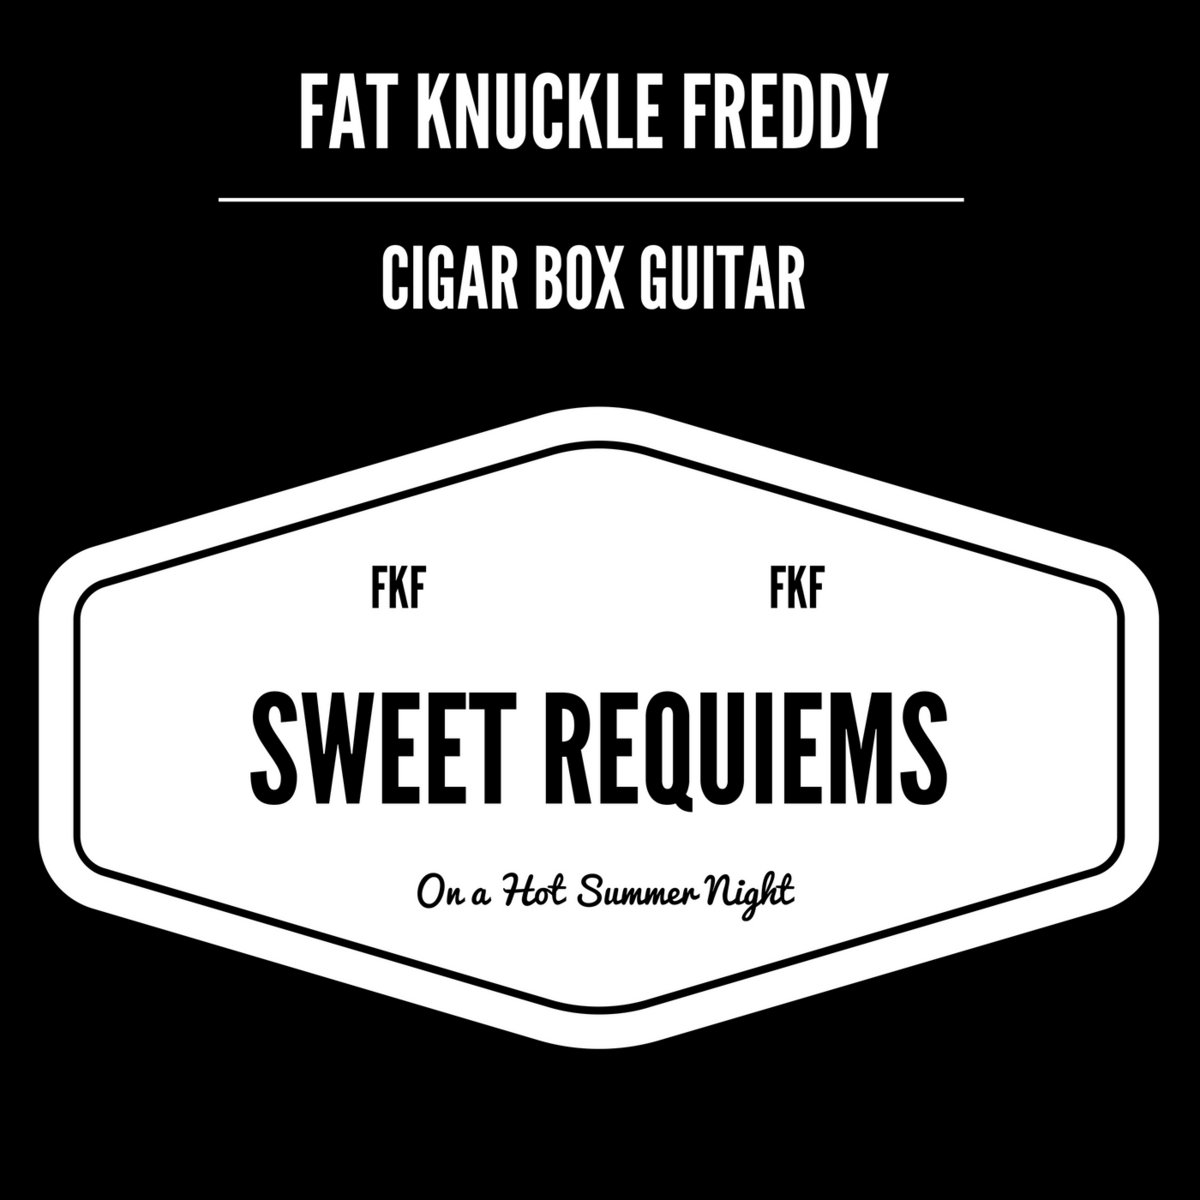 from Sweet Requiems On A Hot Summer Night by Fat Knuckle Freddy